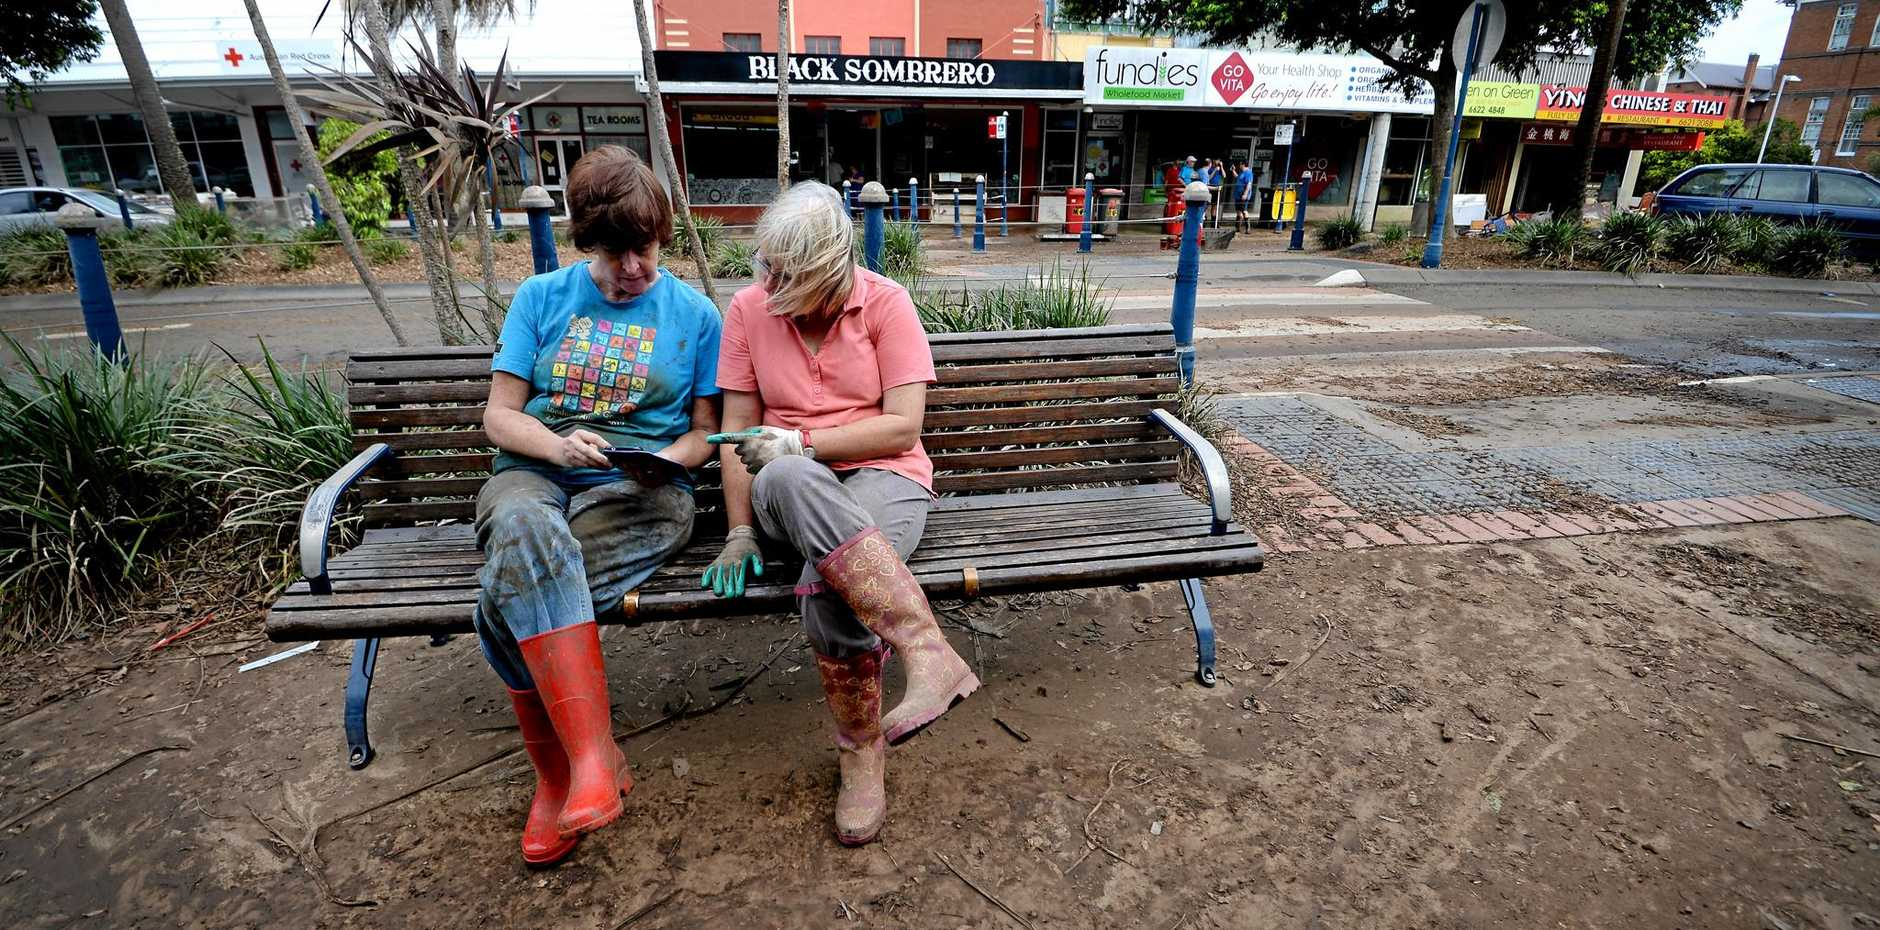 Wendy Wilson and Leanne Beattistuzzi, of Lismore, take a break from cleaning up.